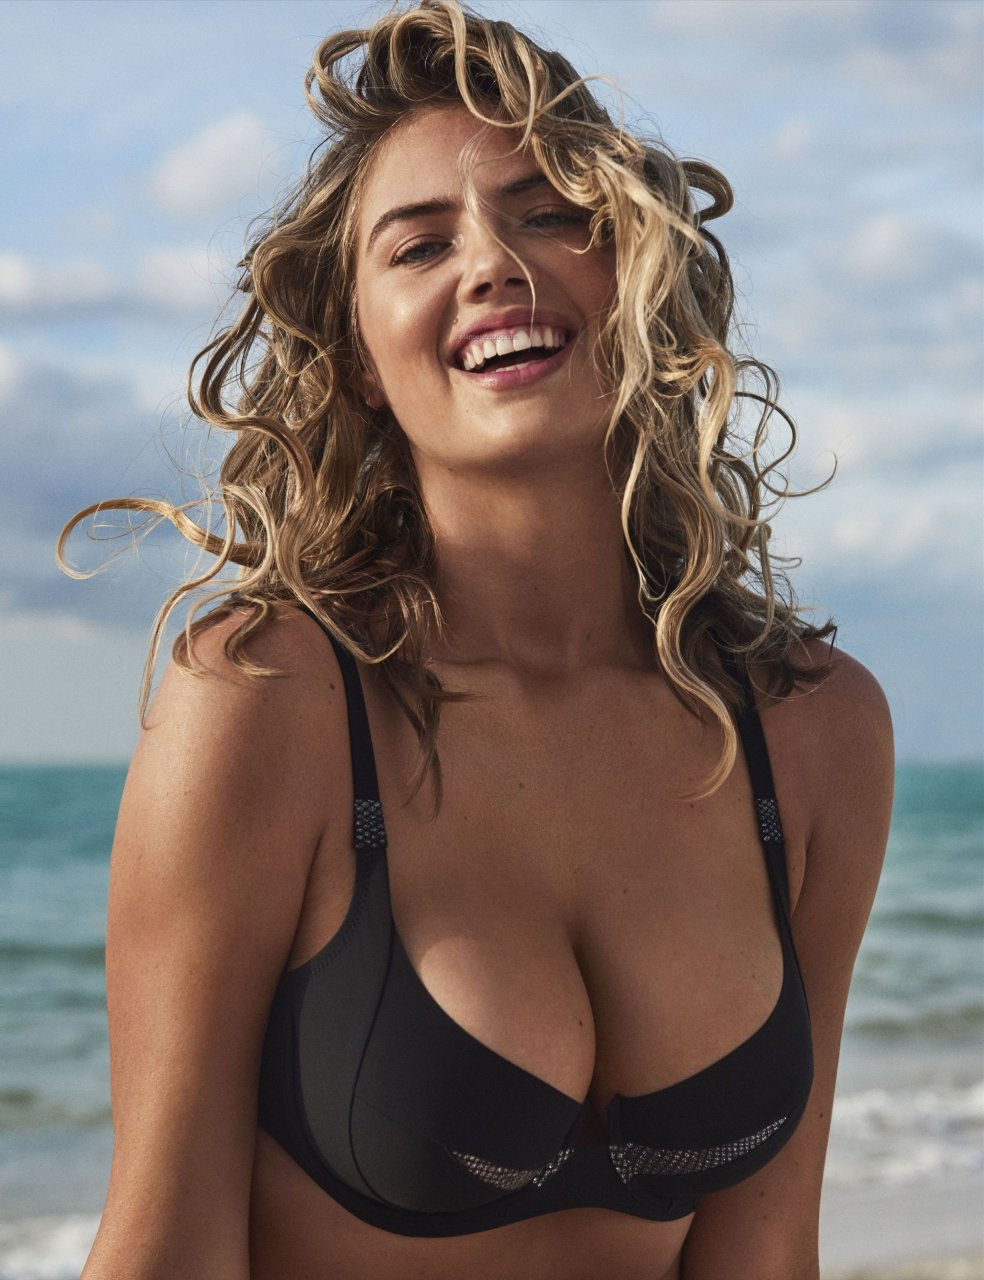 Is The Kate Upton Sex Tape Real kate upton nude photos and videos | #thefappening